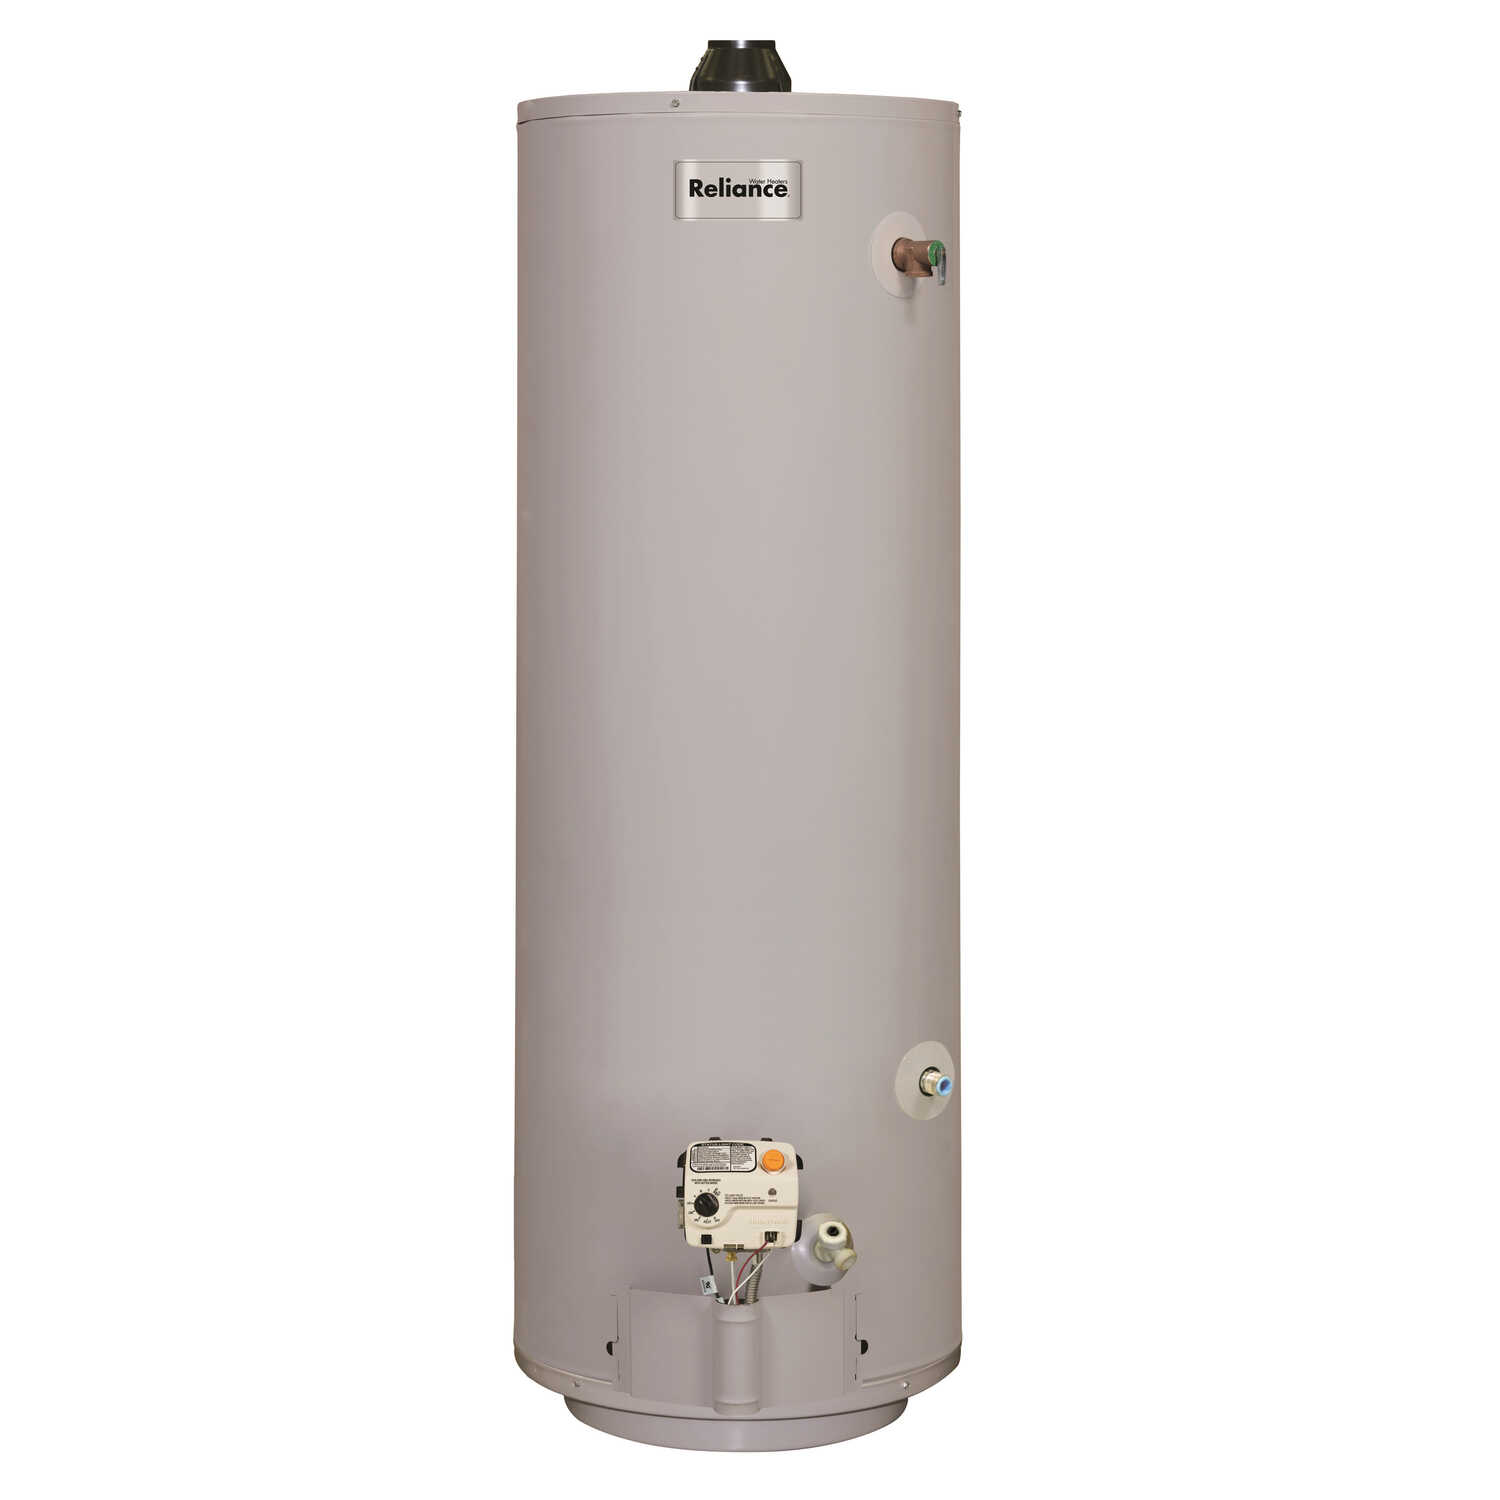 Reliance  40 gal. 32000 BTU Natural Gas/Propane  Mobile Home Water Heater